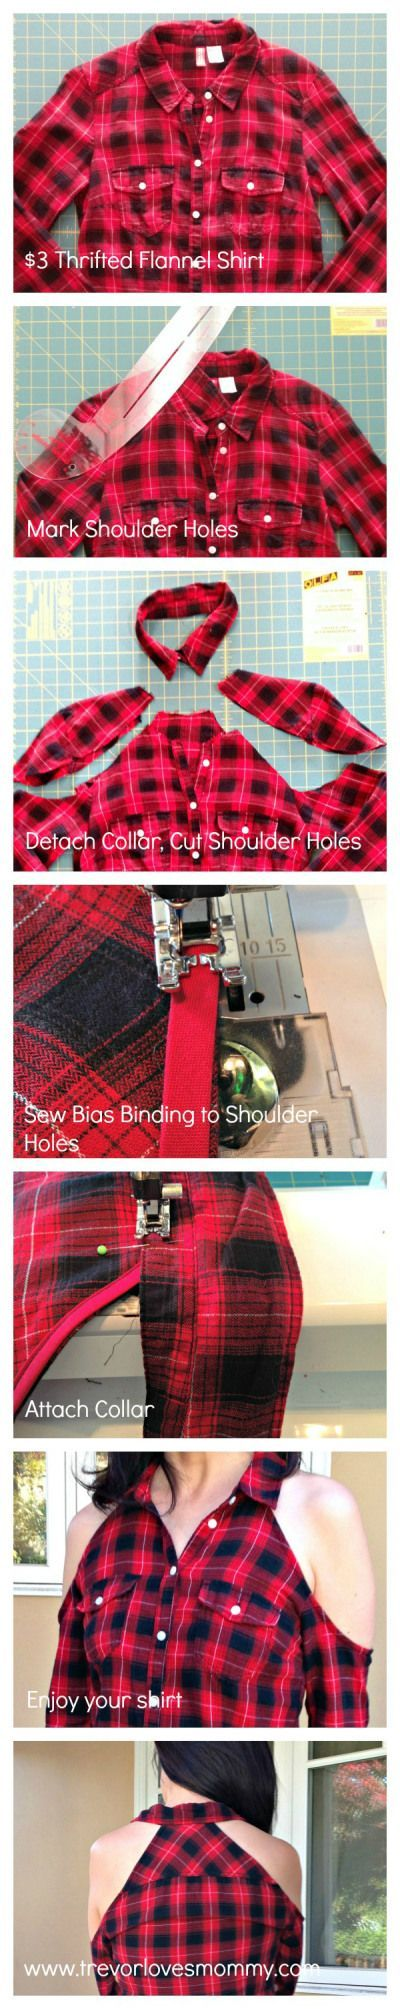 Cold Shoulder Flannel Shirt Refashion - step by step tutorial infographic - make your own shirt, sport shirt, cheap shirts *ad